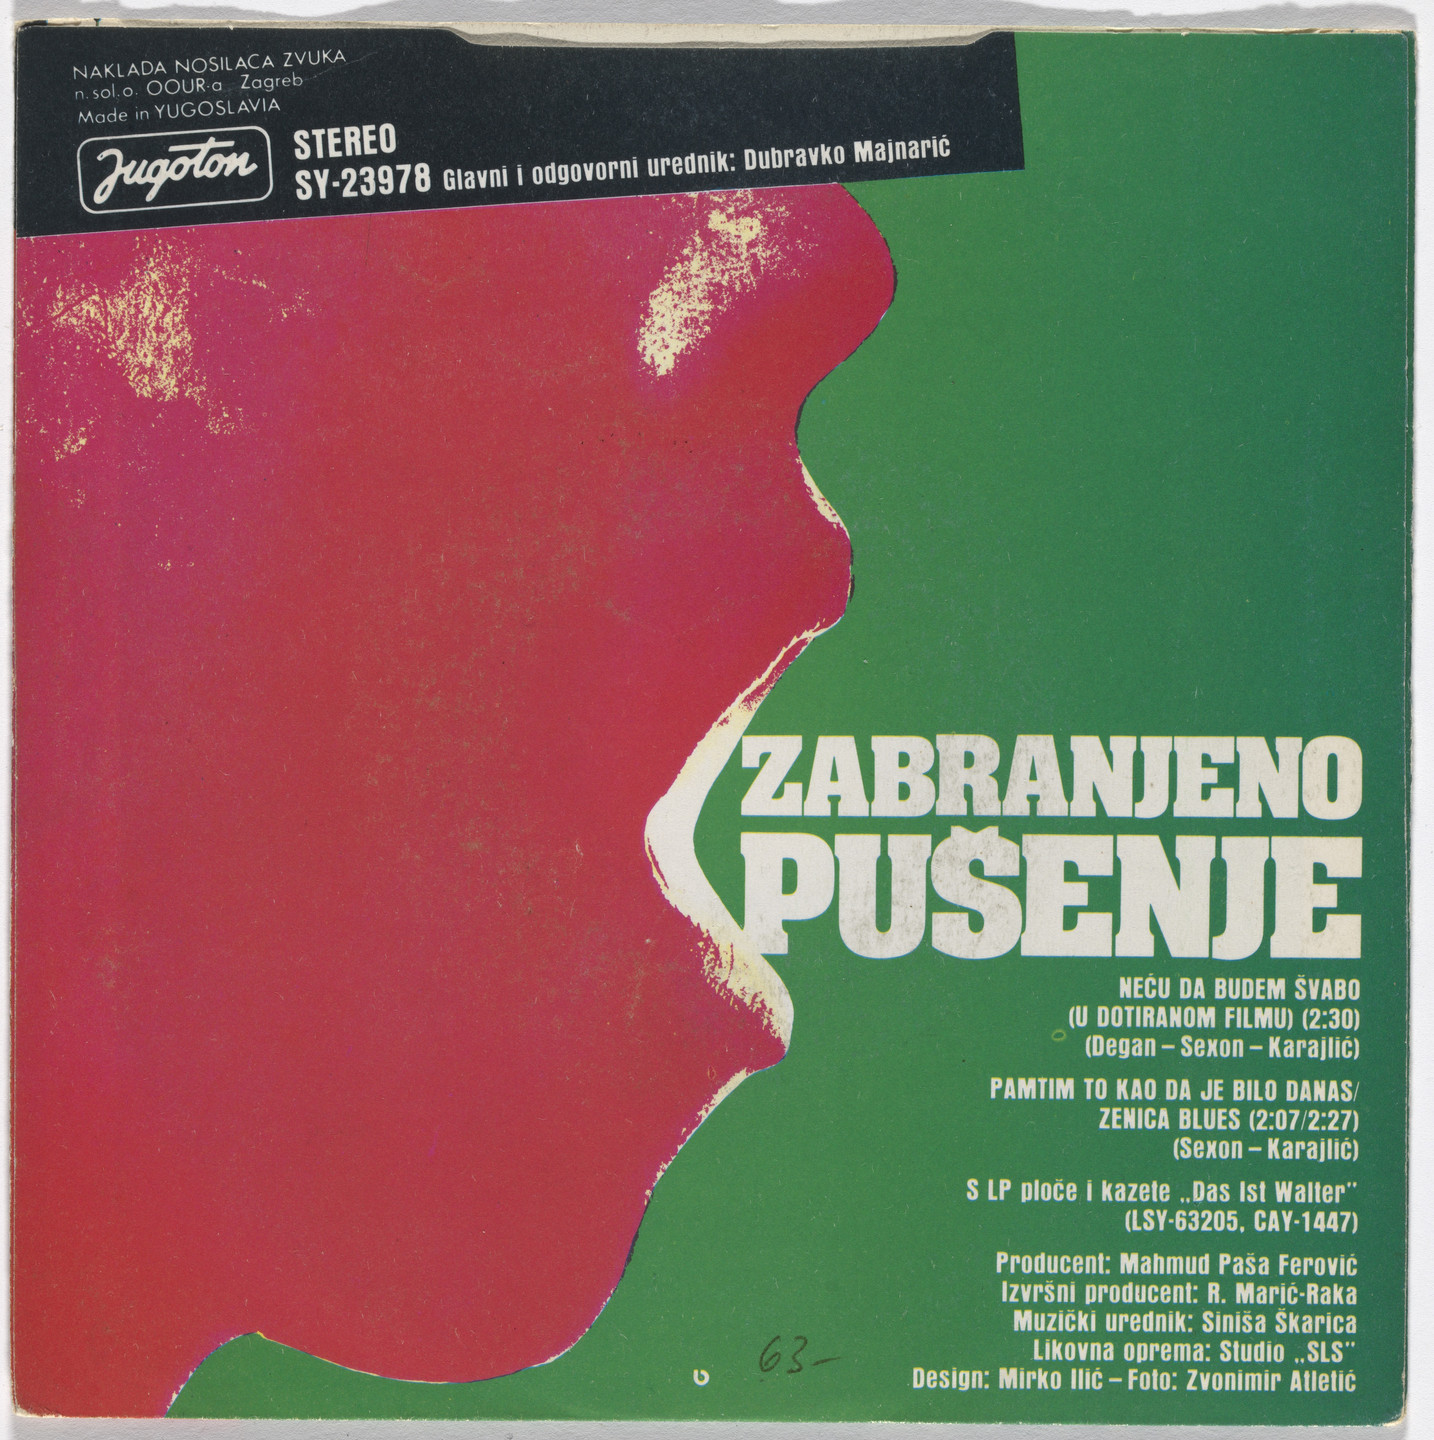 Mirko Ilić, Studio SLS, Zagreb, Croatia, Zvonimir Atletić. Cover for Zabranjeno pušenje (No Smoking) single 'Neću da budem švabo u dotiranom filmu' ('I Don't Want to Be a Kraut'). 1984